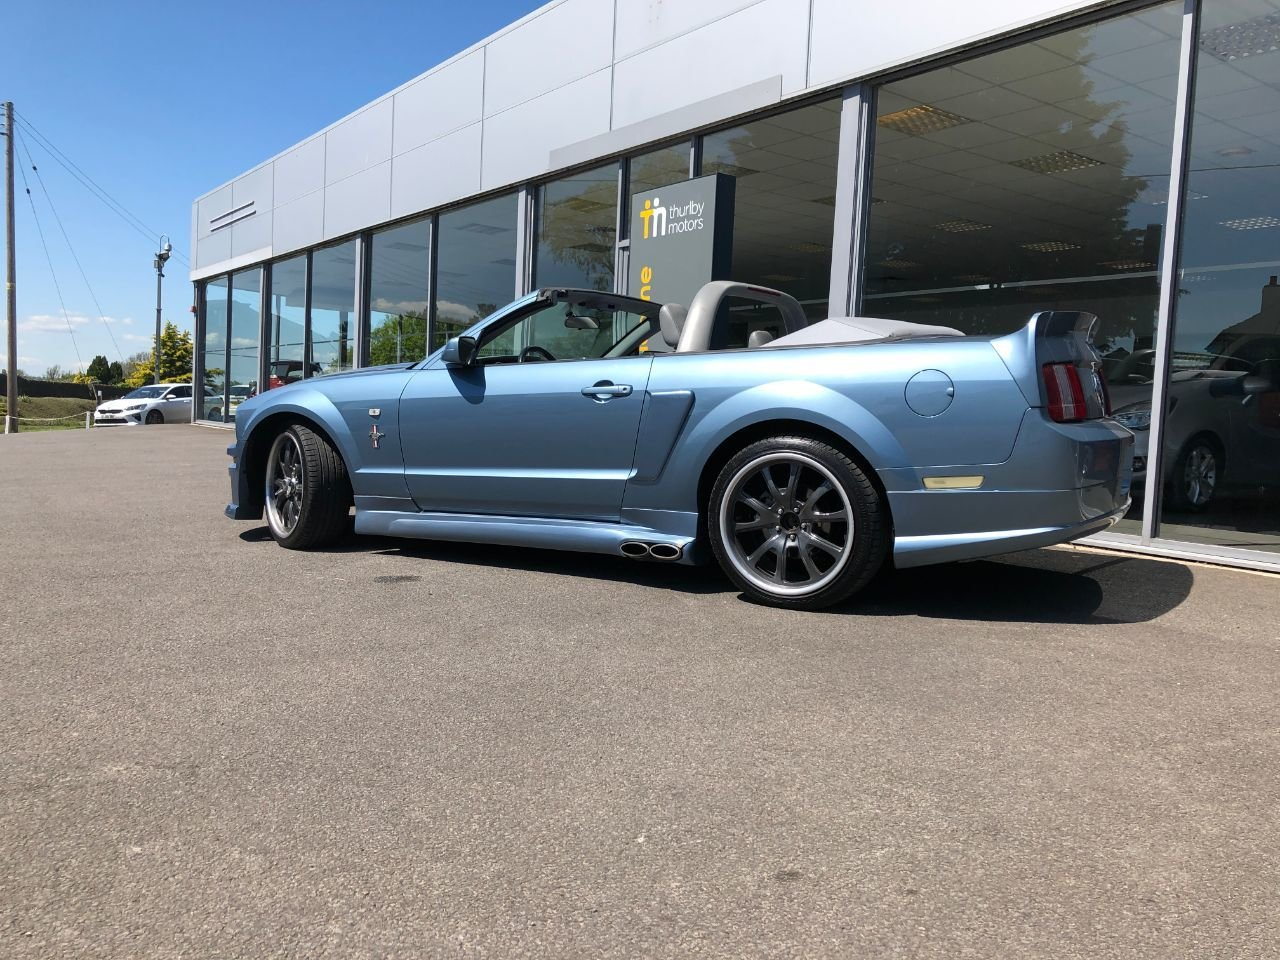 2008 Ford Mustang Convertible For Sale (picture 4 of 6)